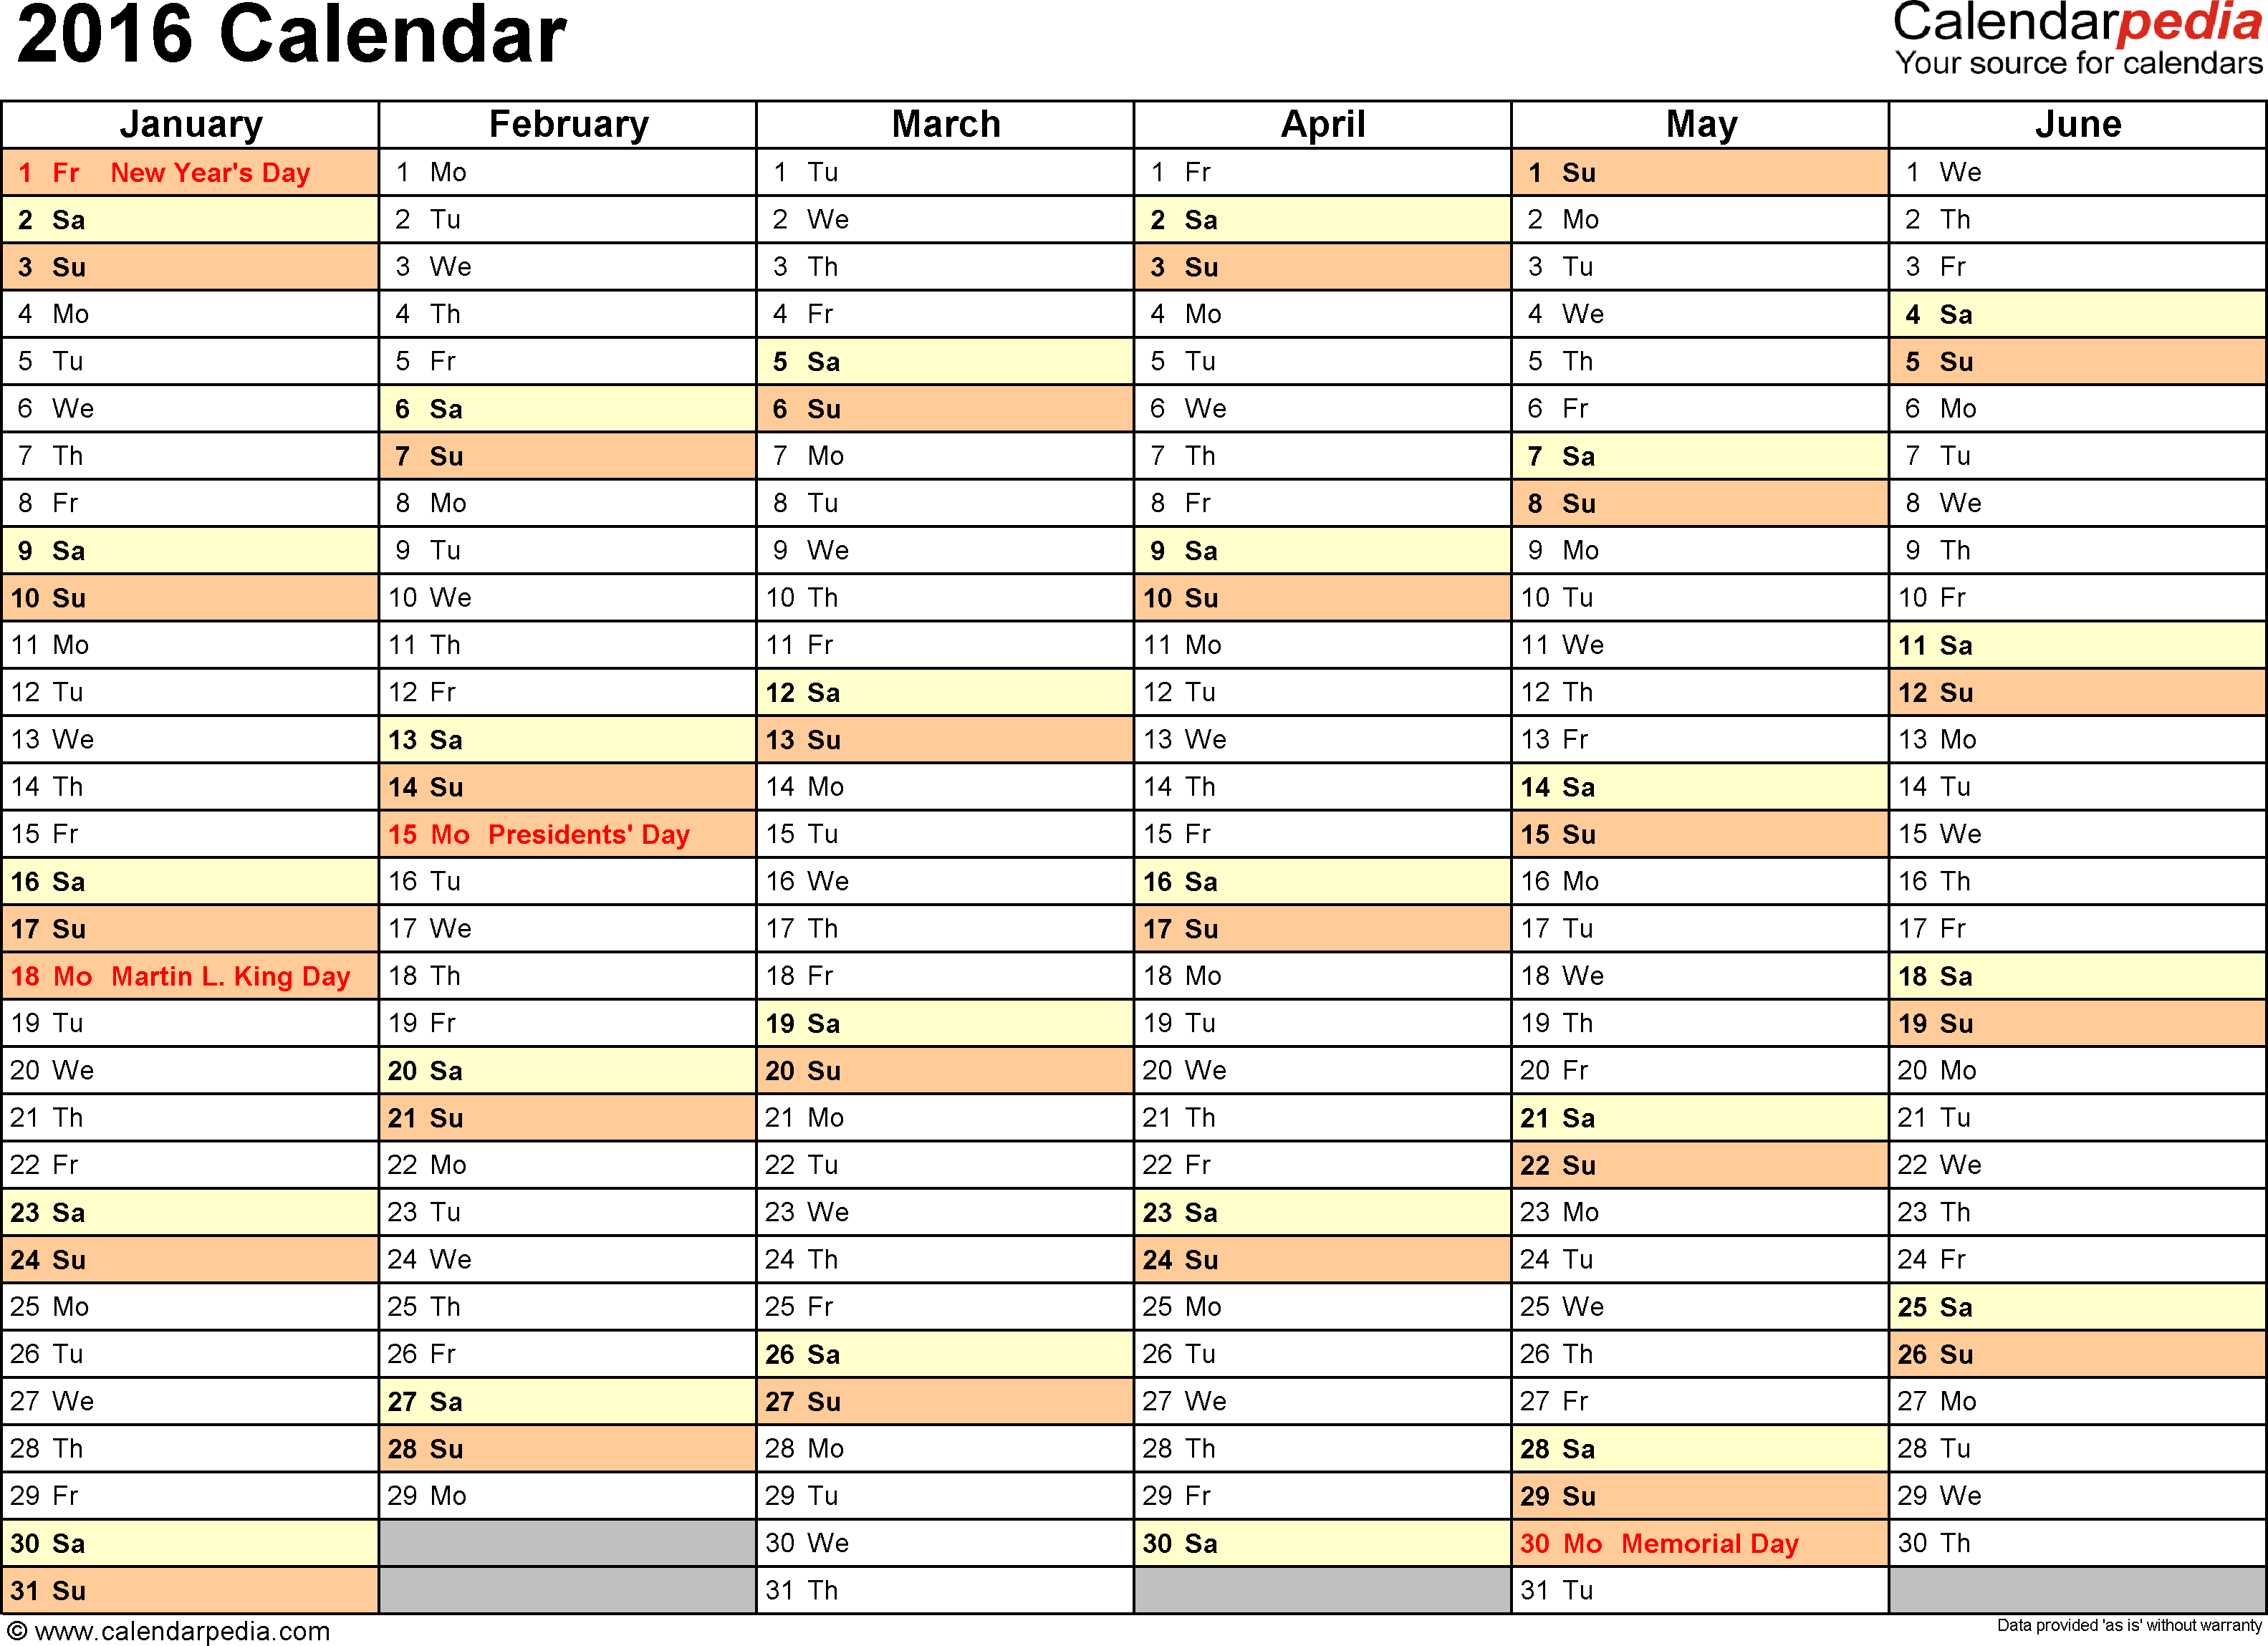 Ediblewildsus  Inspiring  Calendar  Download  Free Printable Excel Templates Xls With Foxy Template   Calendar For Excel Months Horizontally  Pages Landscape Orientation With Agreeable Excel Planning Template Also Convert Letters To Numbers Excel In Addition Efficient Frontier Excel Template And Two Graphs In One Excel As Well As Excel Sort Ascending Additionally Learning Visual Basic Excel From Calendarpediacom With Ediblewildsus  Foxy  Calendar  Download  Free Printable Excel Templates Xls With Agreeable Template   Calendar For Excel Months Horizontally  Pages Landscape Orientation And Inspiring Excel Planning Template Also Convert Letters To Numbers Excel In Addition Efficient Frontier Excel Template From Calendarpediacom